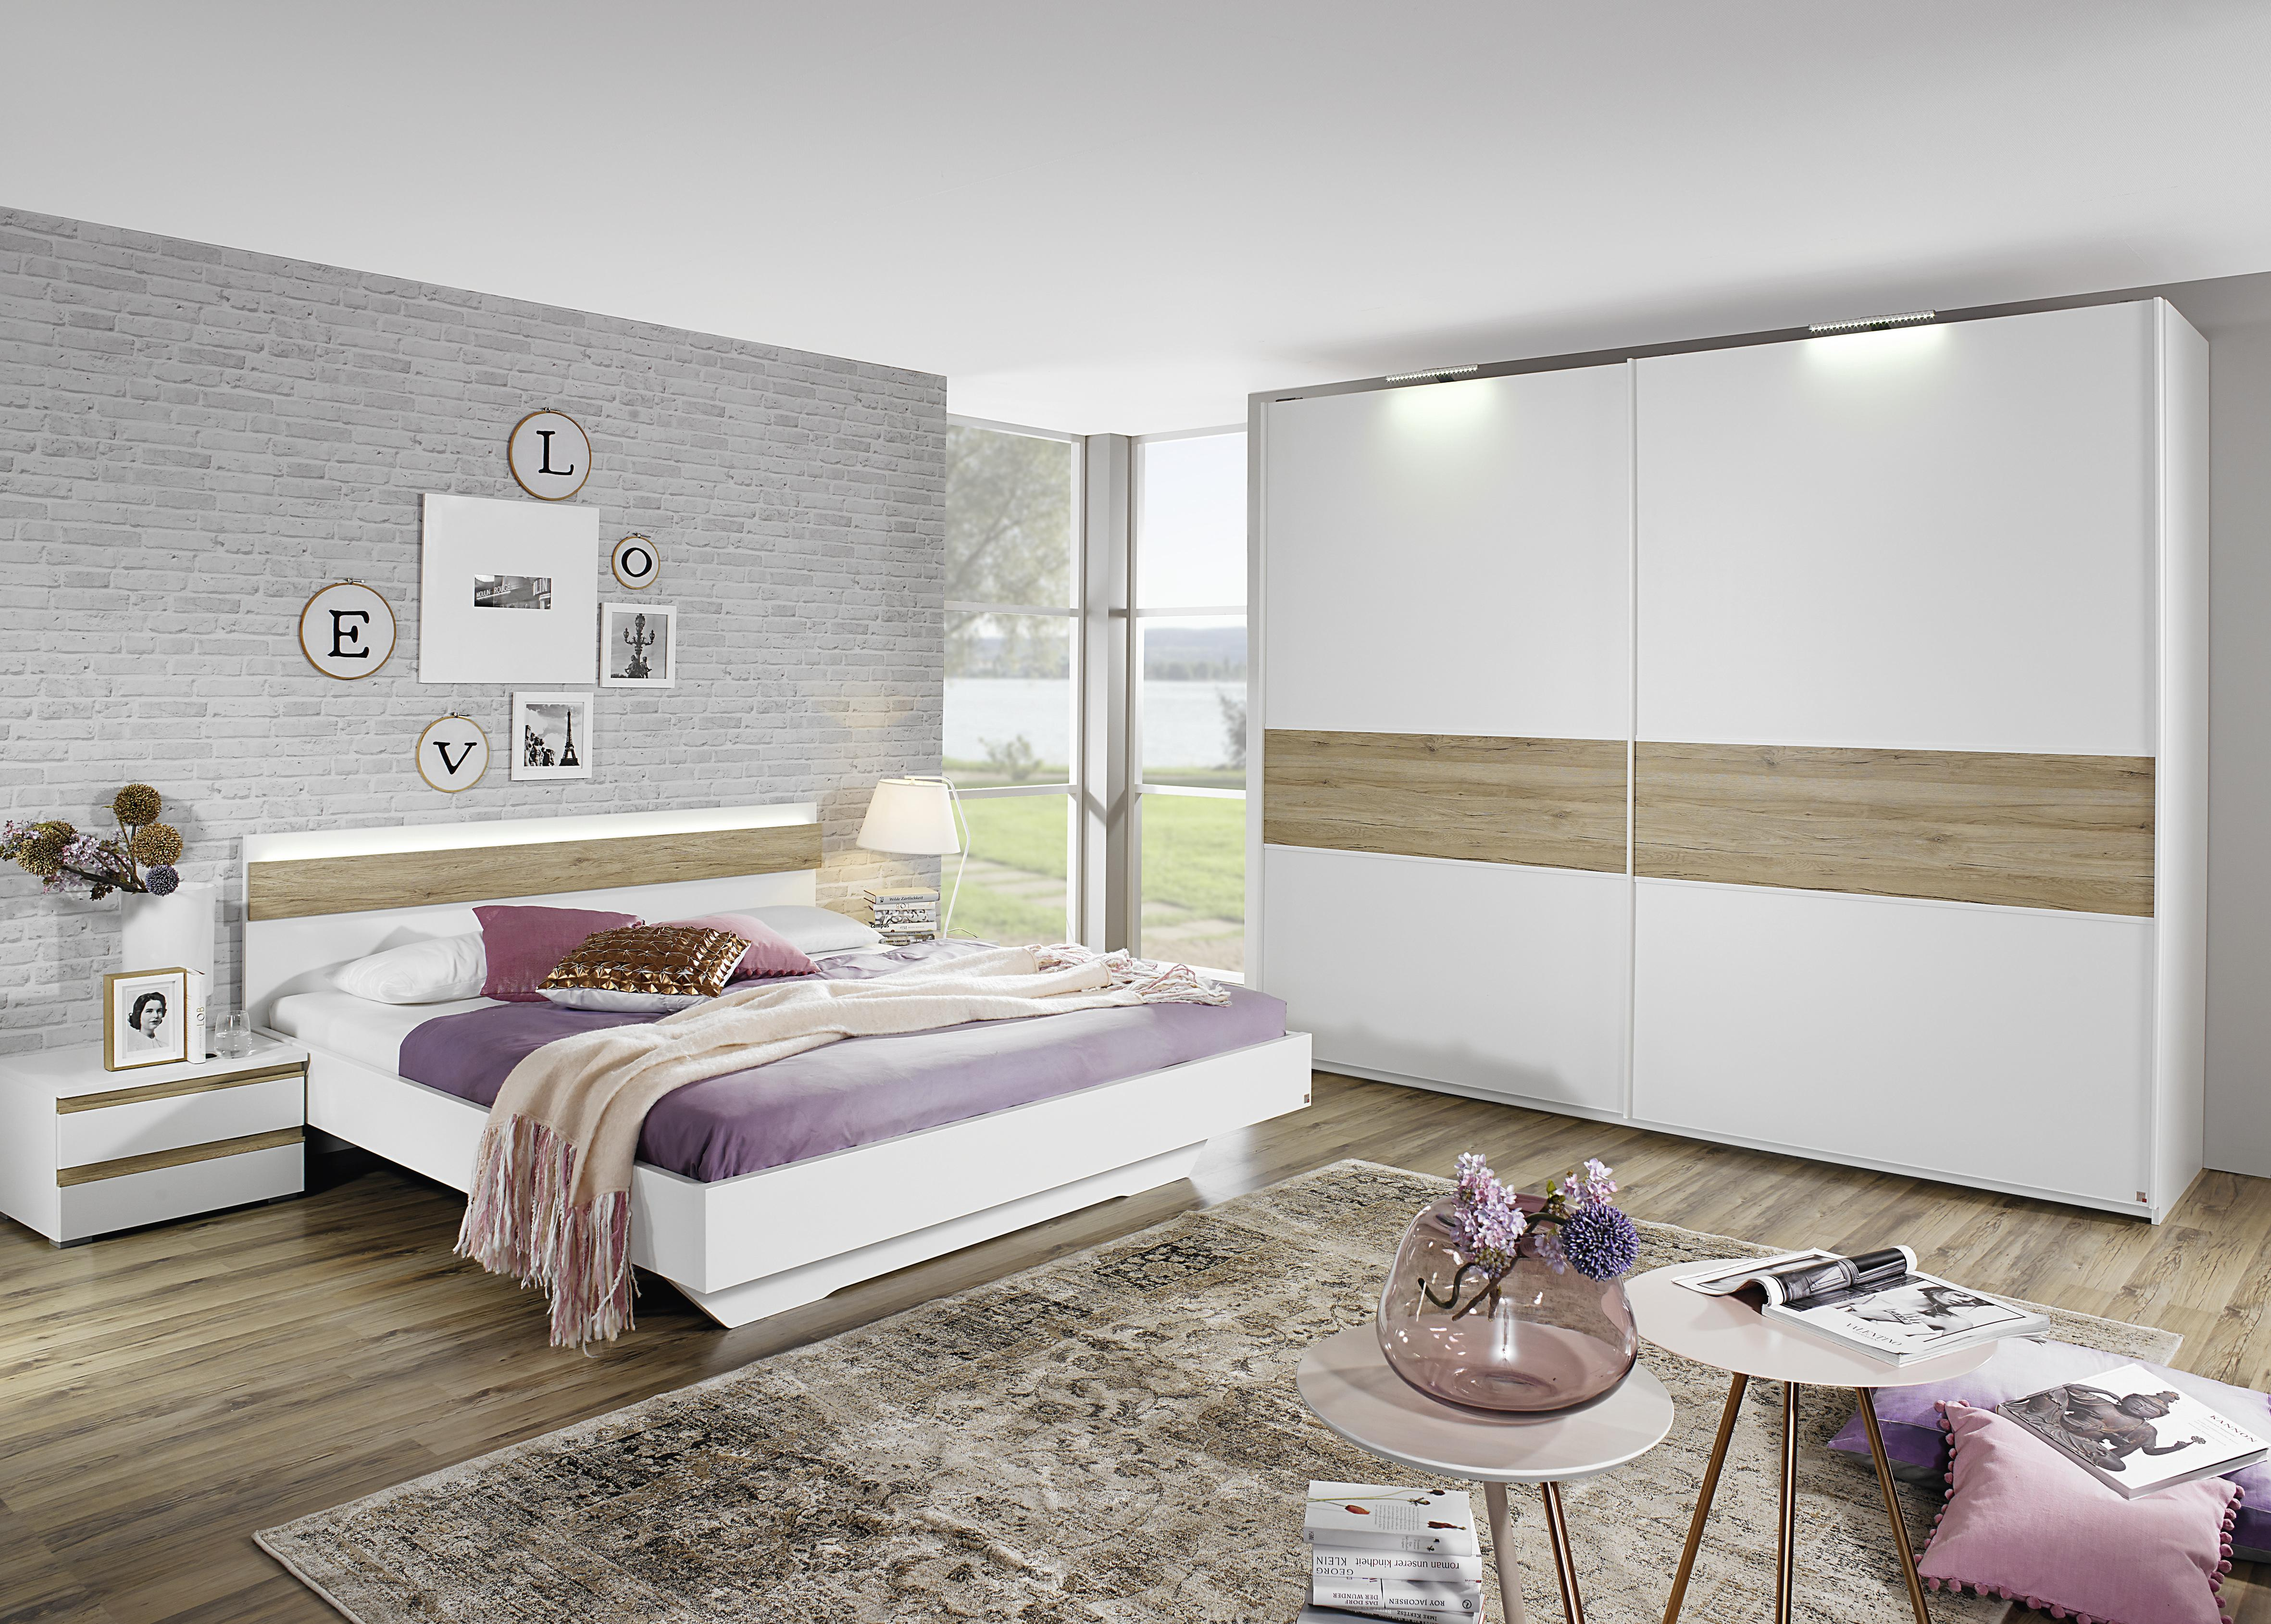 200x200 bett mara von rauch dialog alpinwei eiche. Black Bedroom Furniture Sets. Home Design Ideas